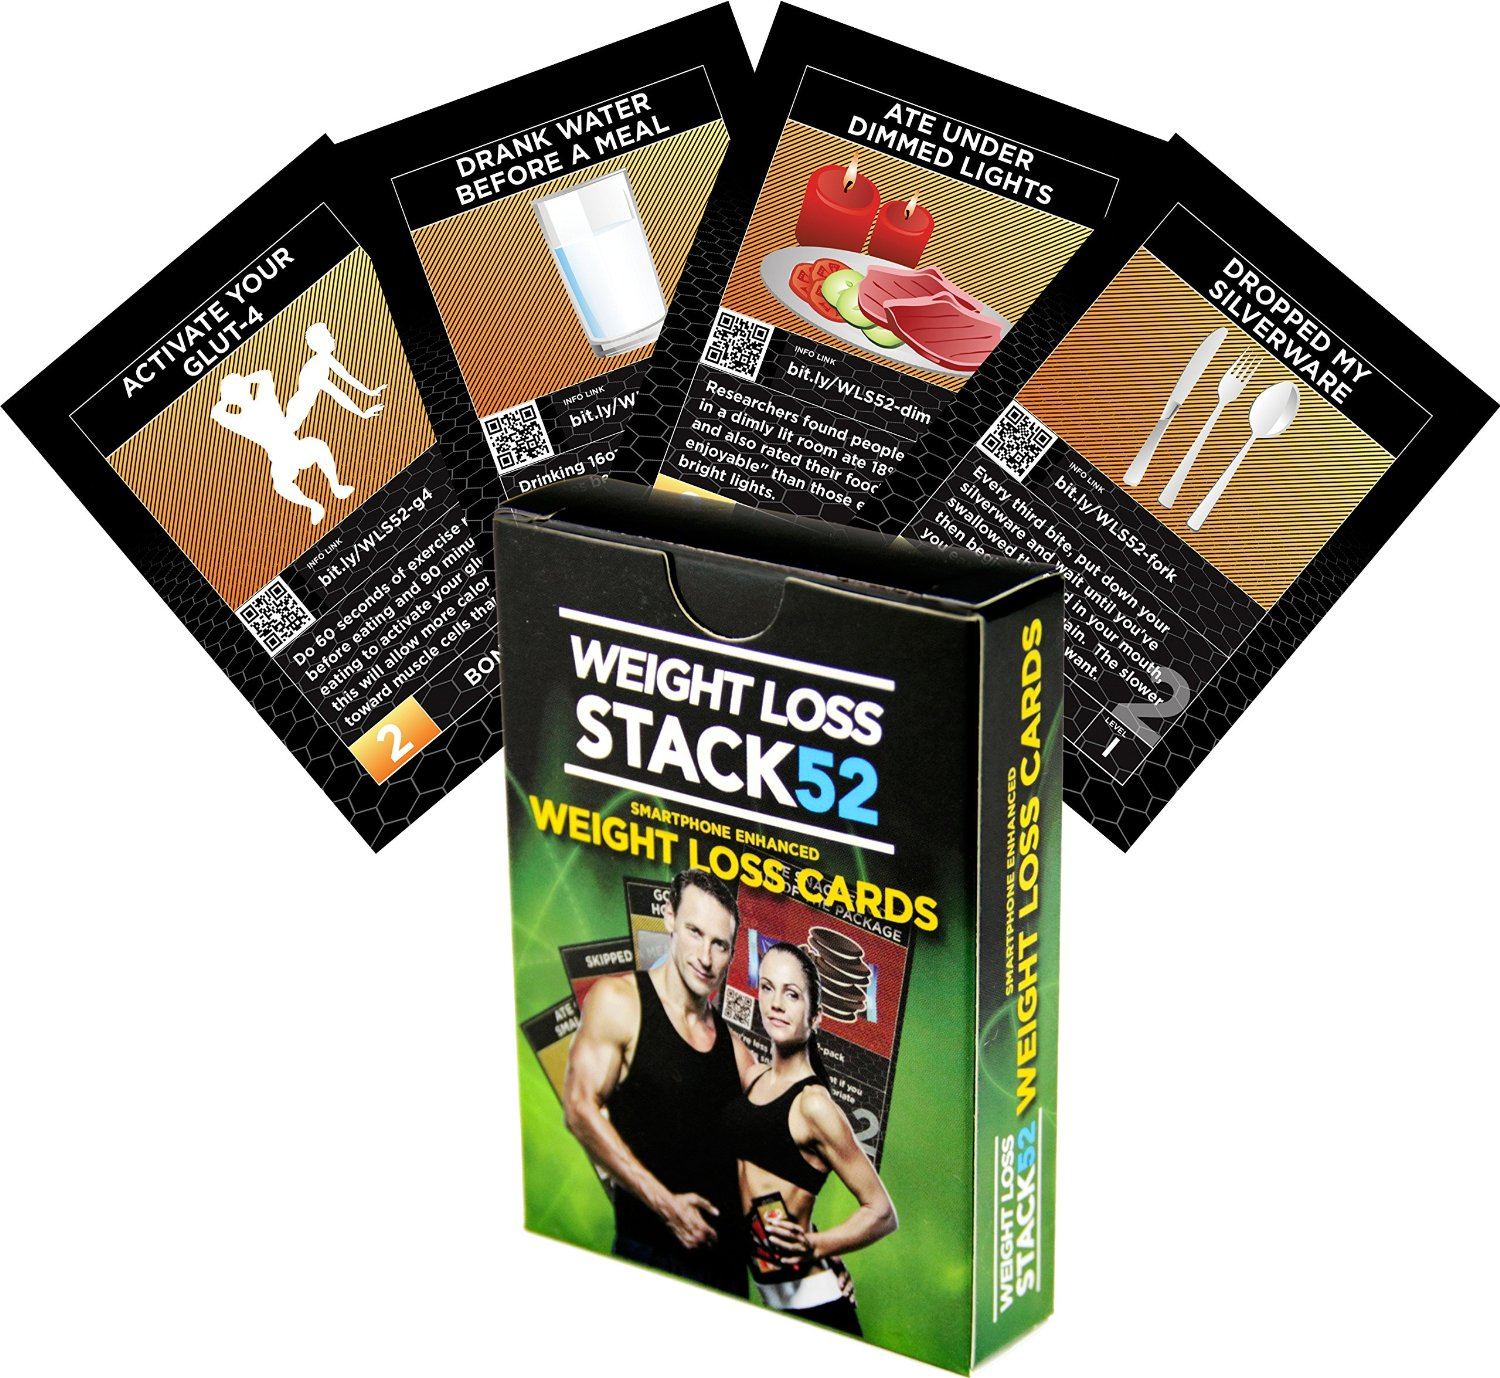 Weight Loss Playing Card Game by Stack 52. Build Habits That Are Scientifically Proven to Promote Fat Loss. Lose Weight by Beating Your Previous Score Each Week. Not a Diet. No Calorie Counting